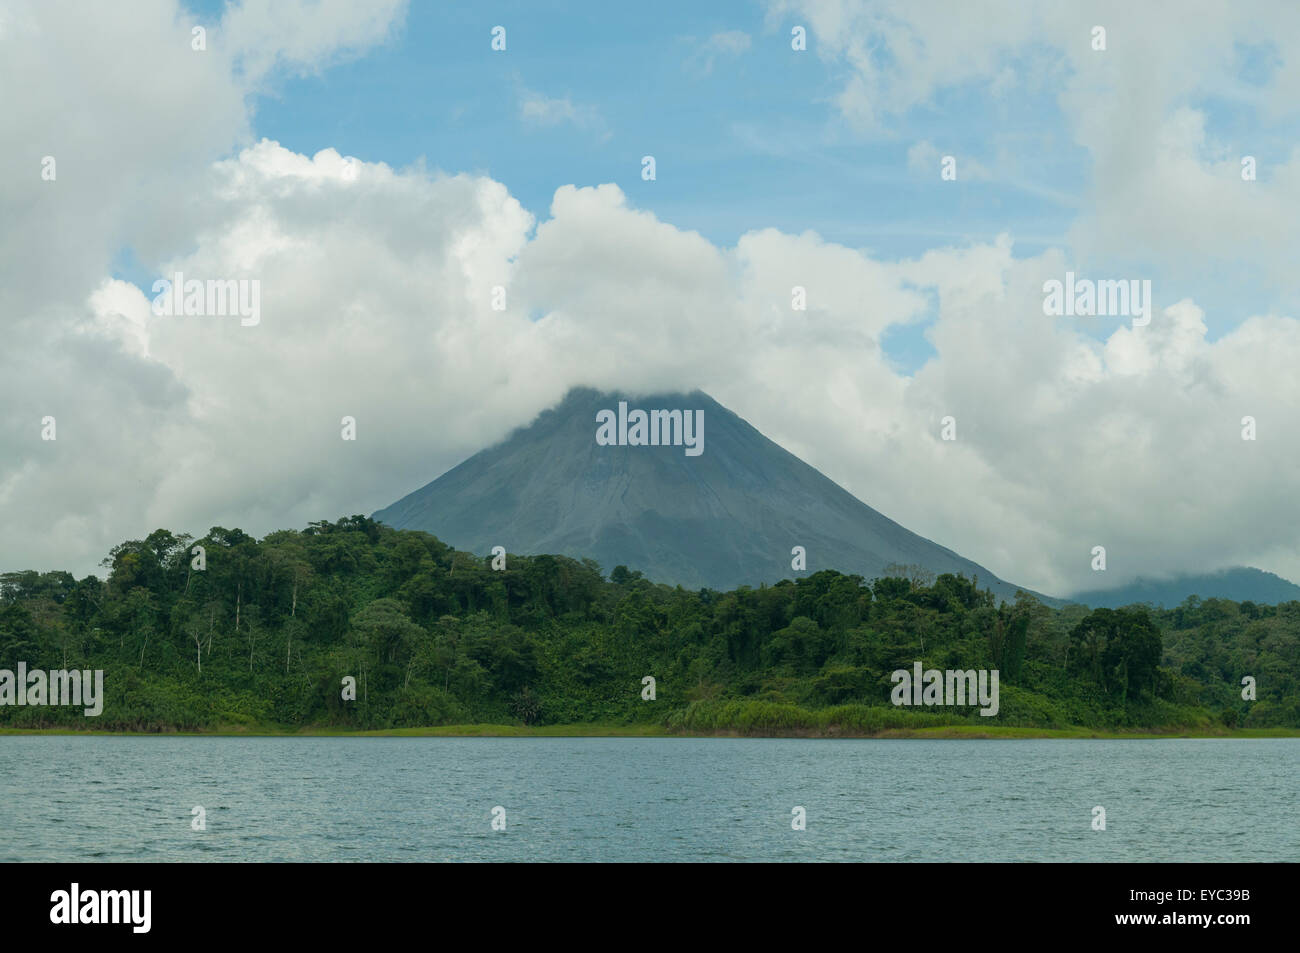 Arenal Volcano from Lake Arenal, Costa Rica - Stock Image